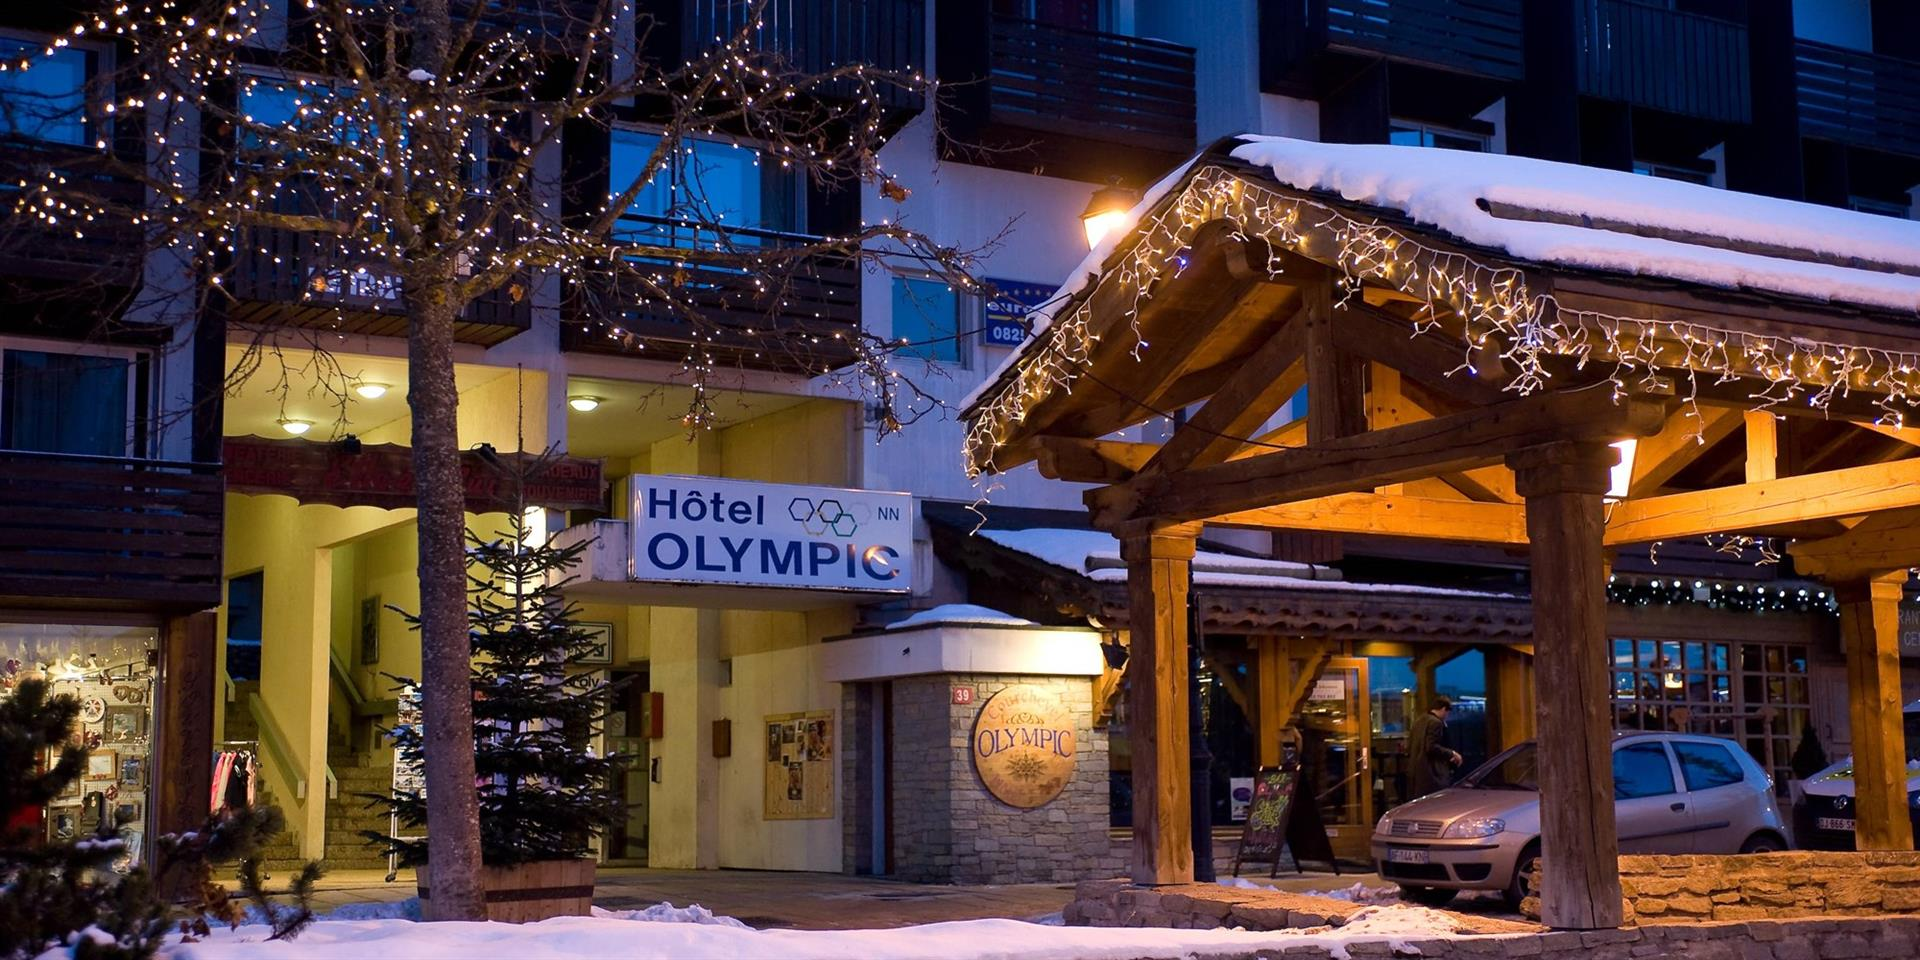 Hotel Olympic 1850